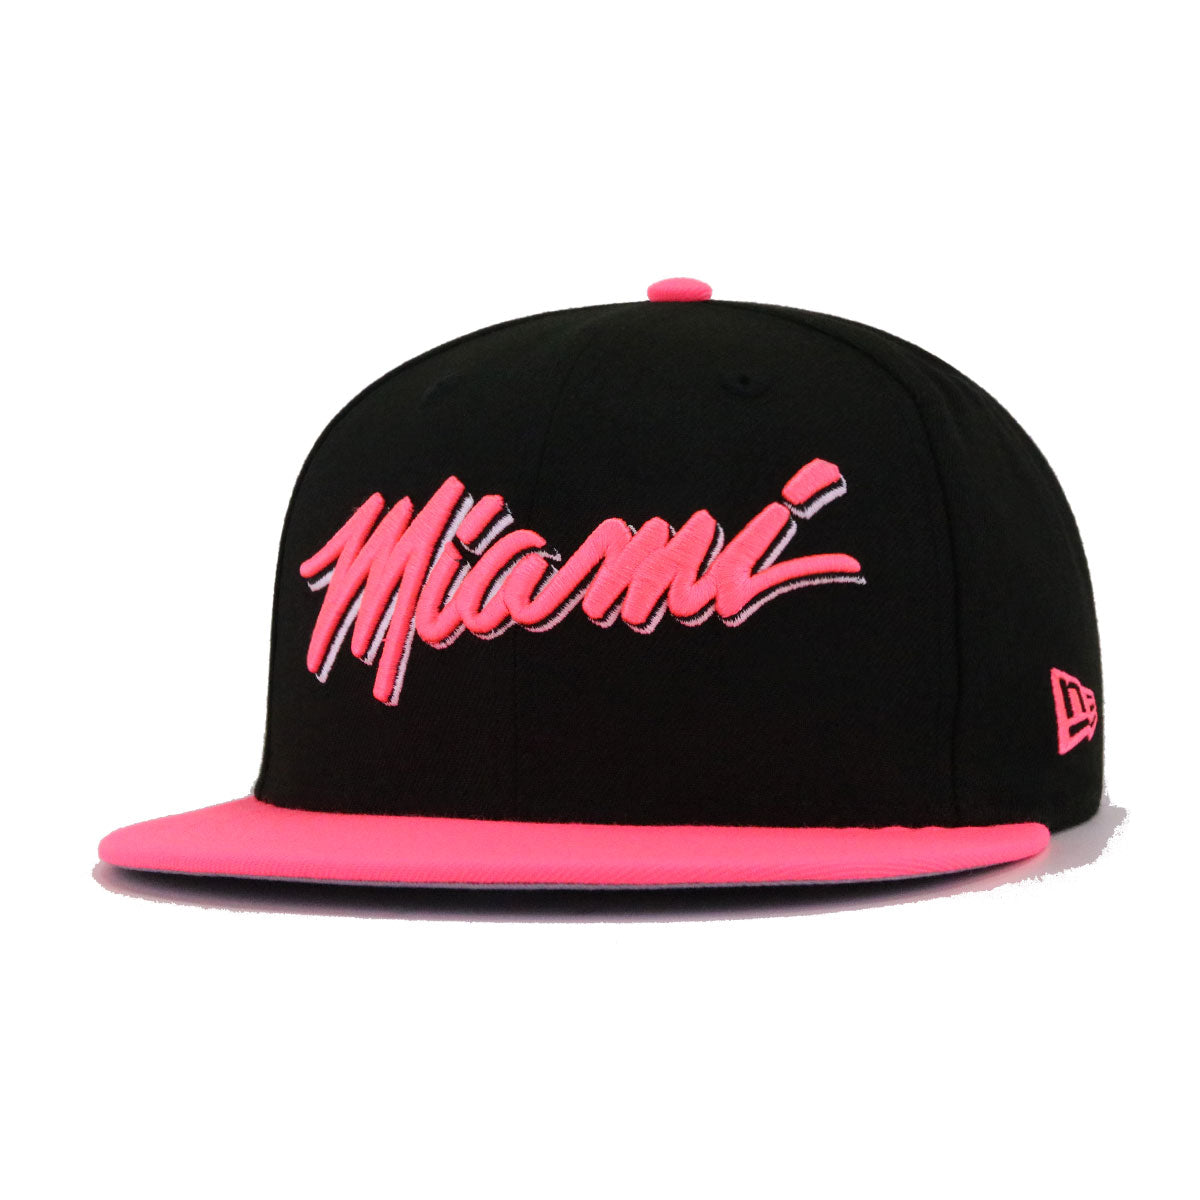 Miami Heat Black Pink Glow New Era 9Fifty Snapback